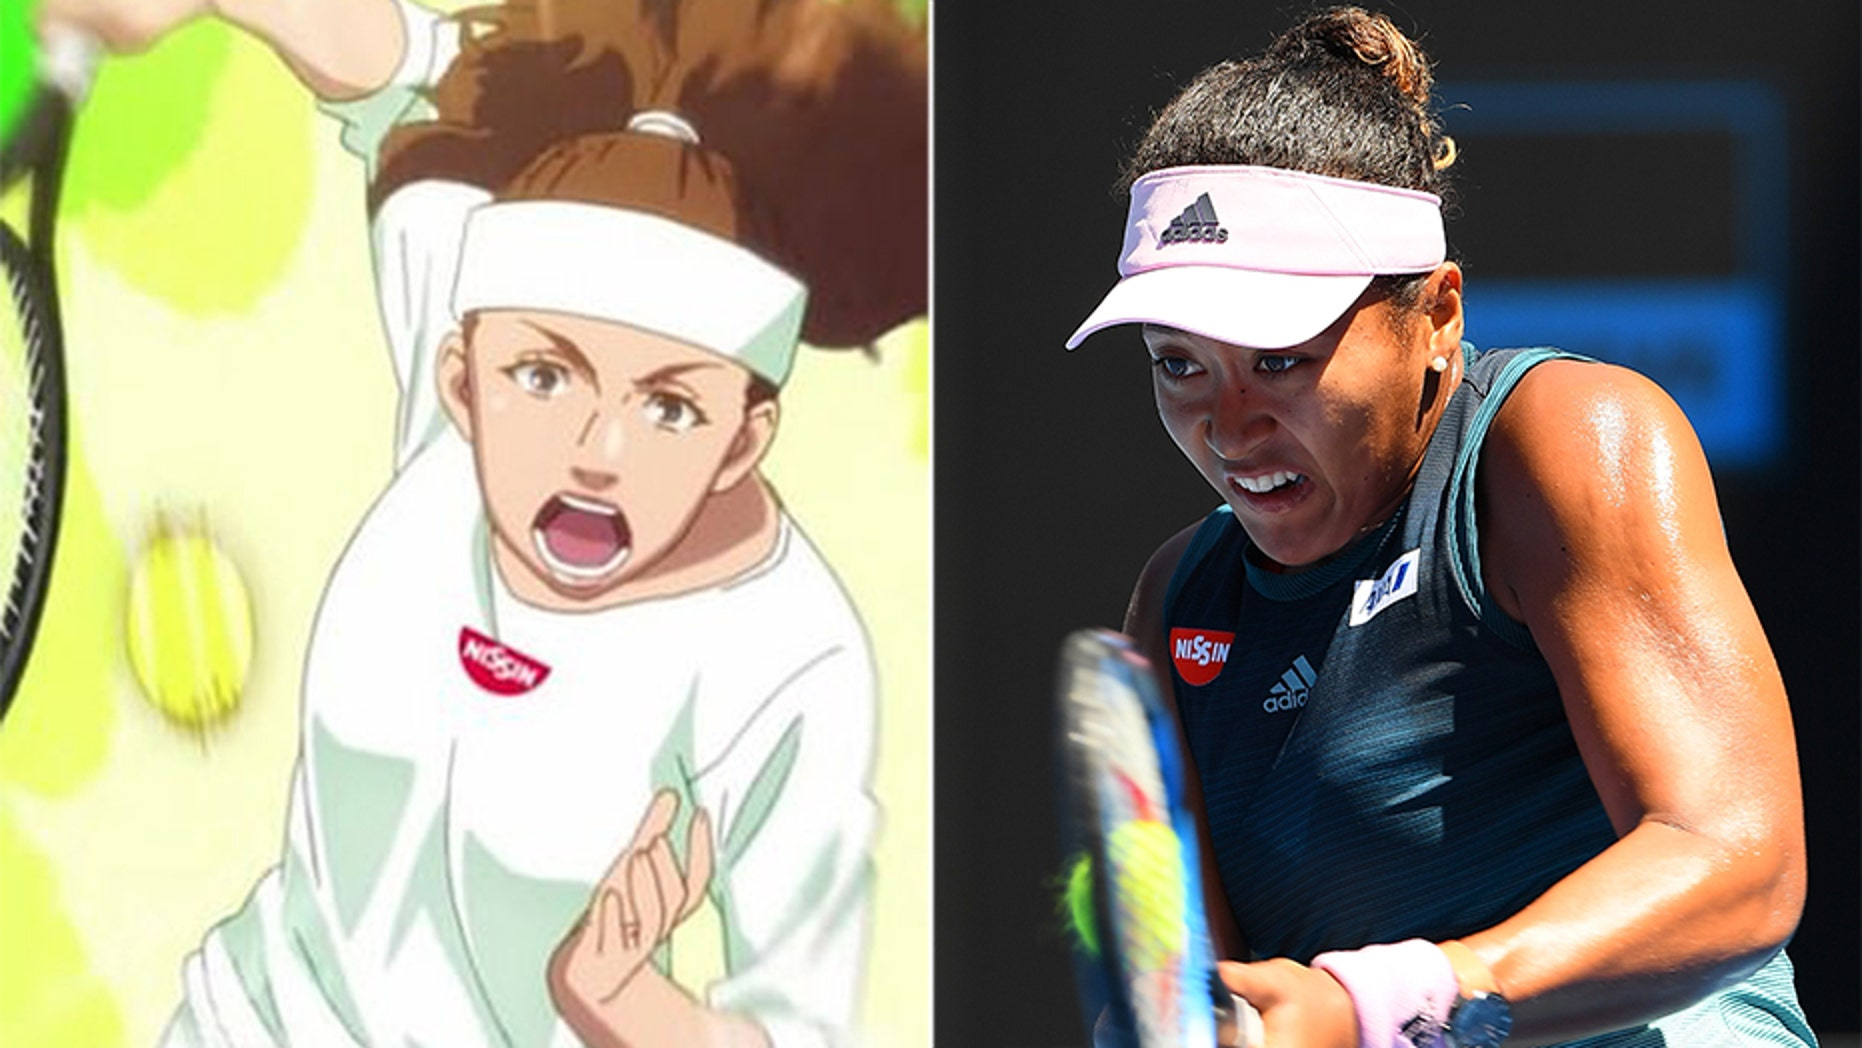 A Naomi Osaka anime character appeared in a Nissin ad.